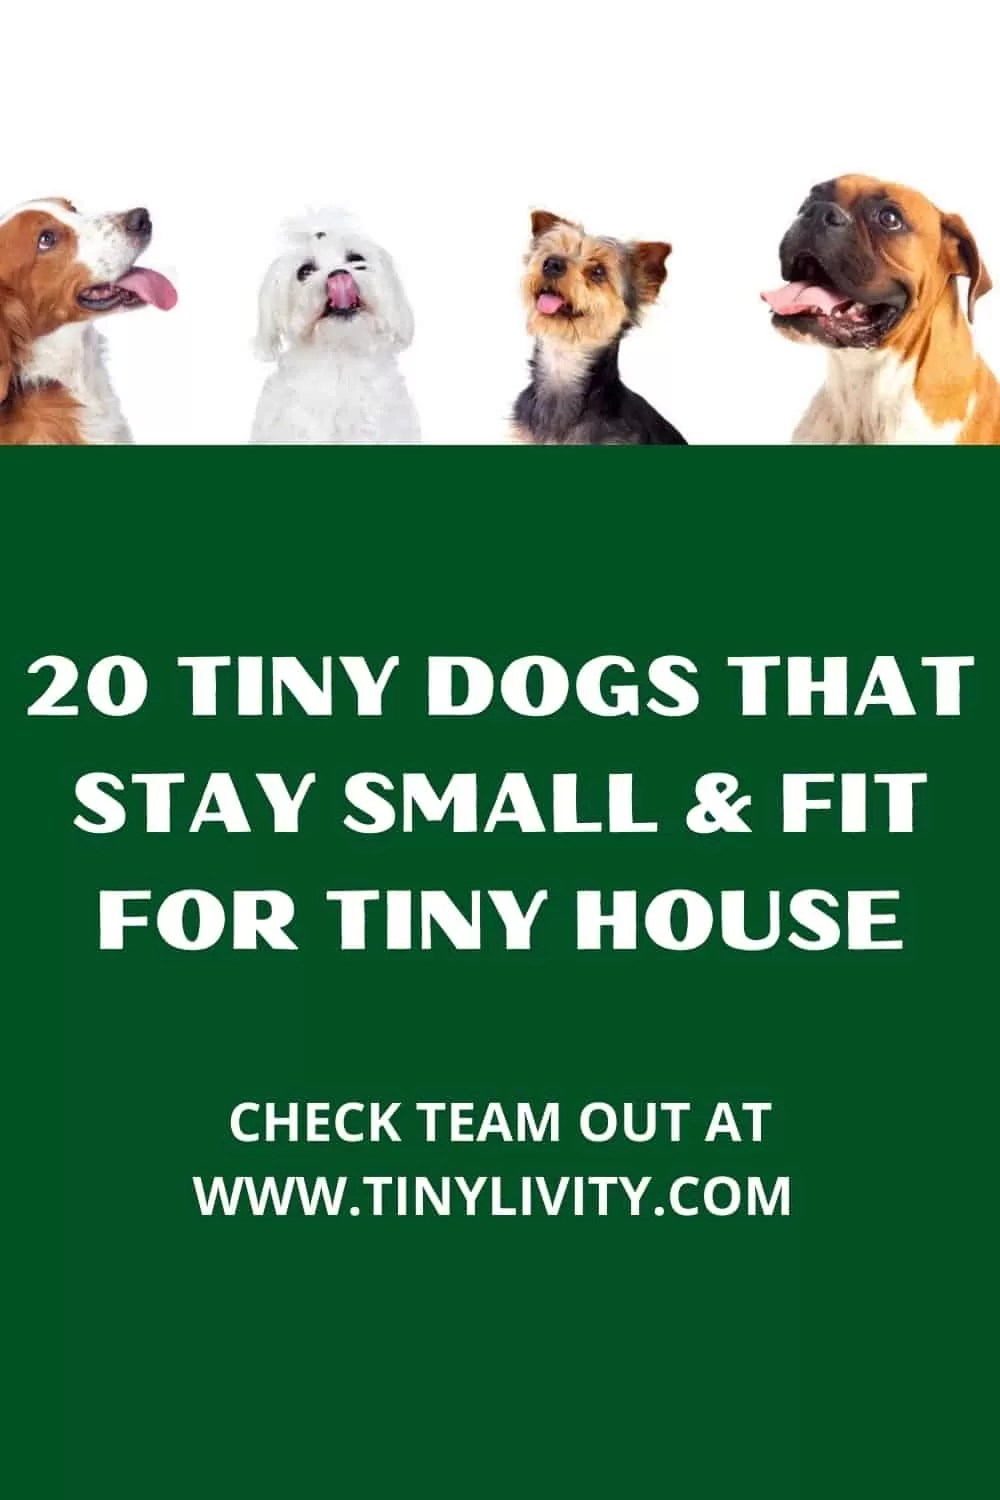 20 Tiny Dogs That Stay Small & Fit for Tiny House